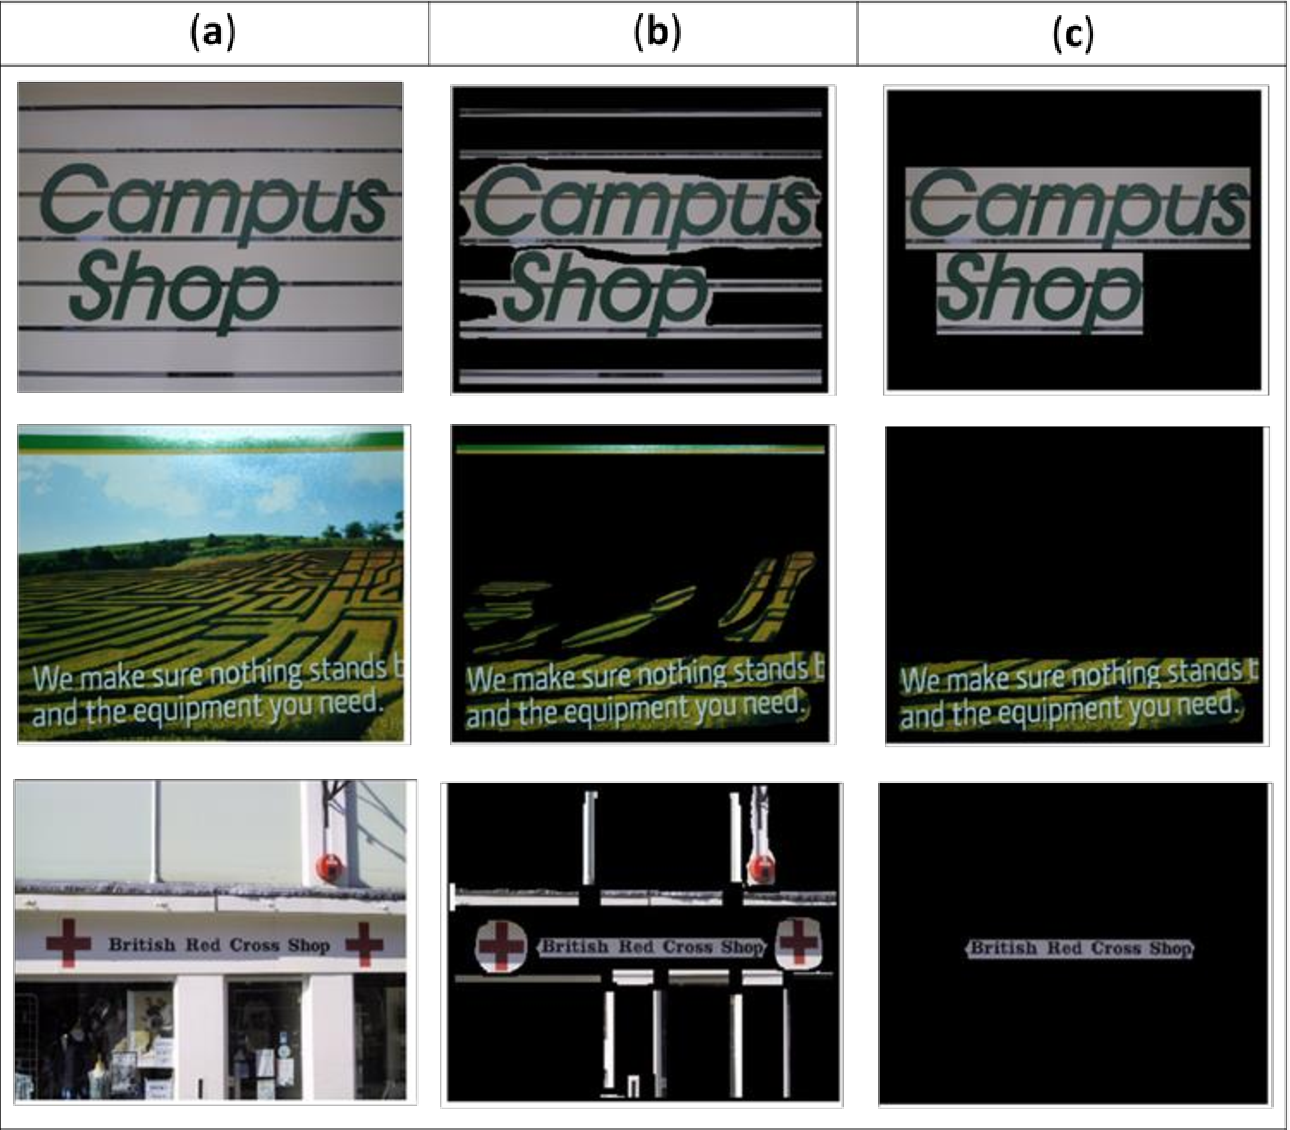 Figure 2 for Multi-Oriented Text Detection and Verification in Video Frames and Scene Images